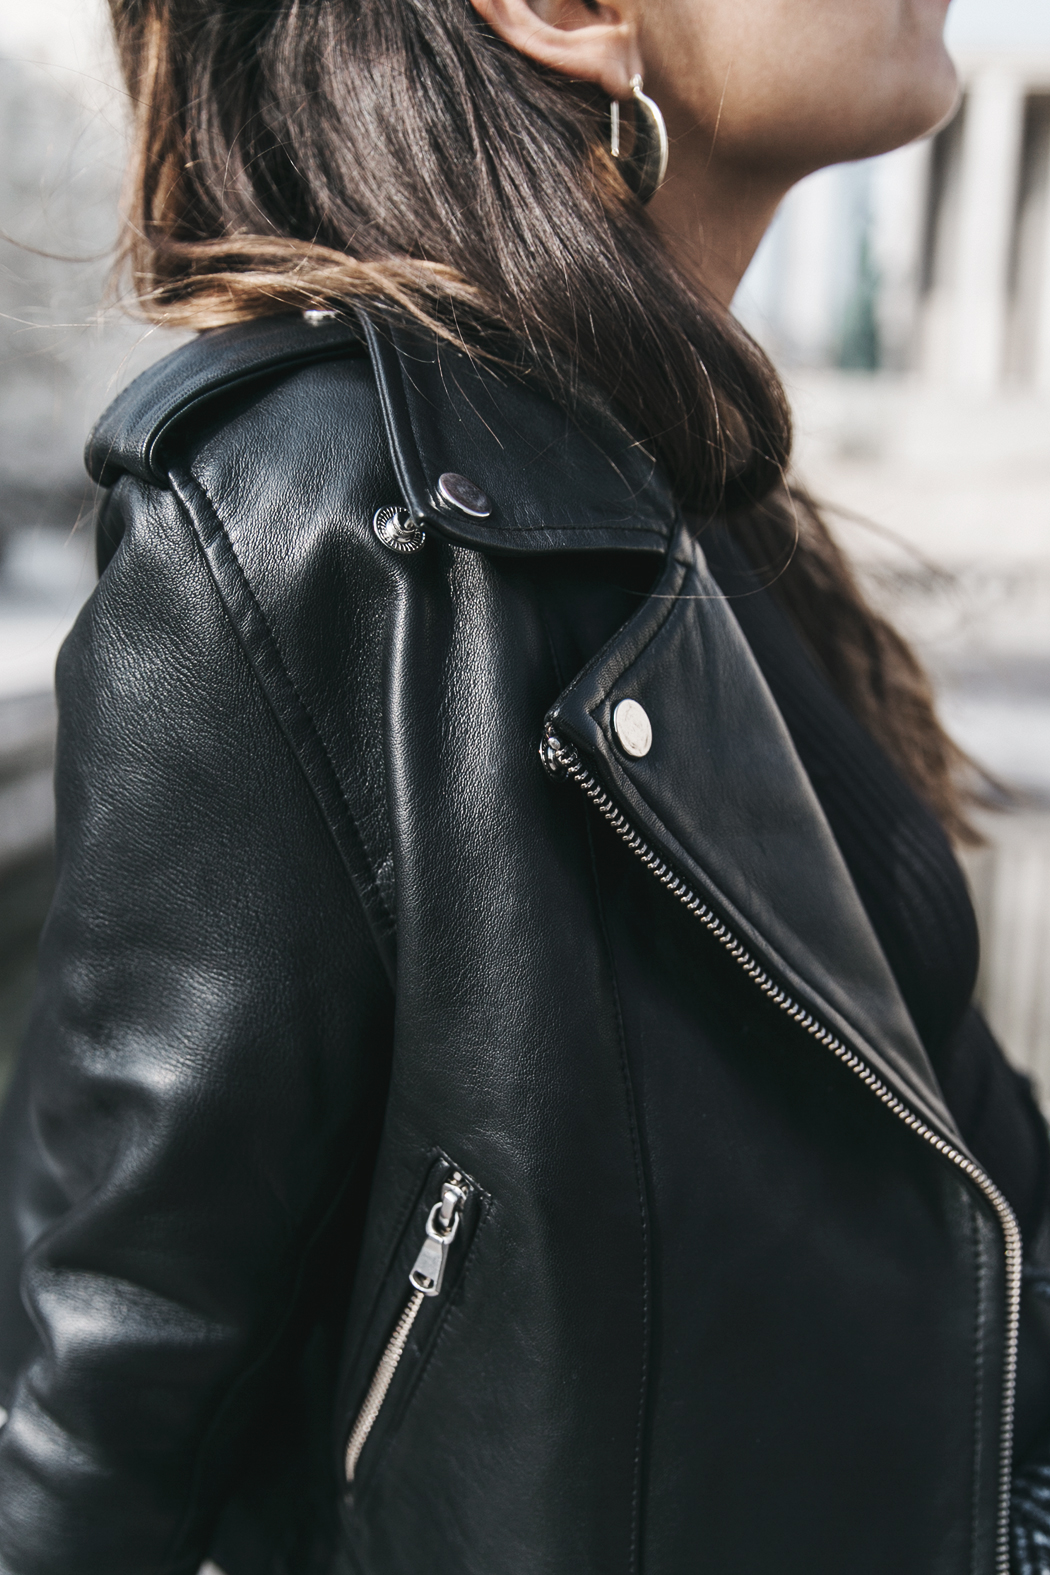 Black_Body-Leather_Jacket-Celine_boots-Gucci_Belt-Wide_Leg_Trousers-Street_Style-8